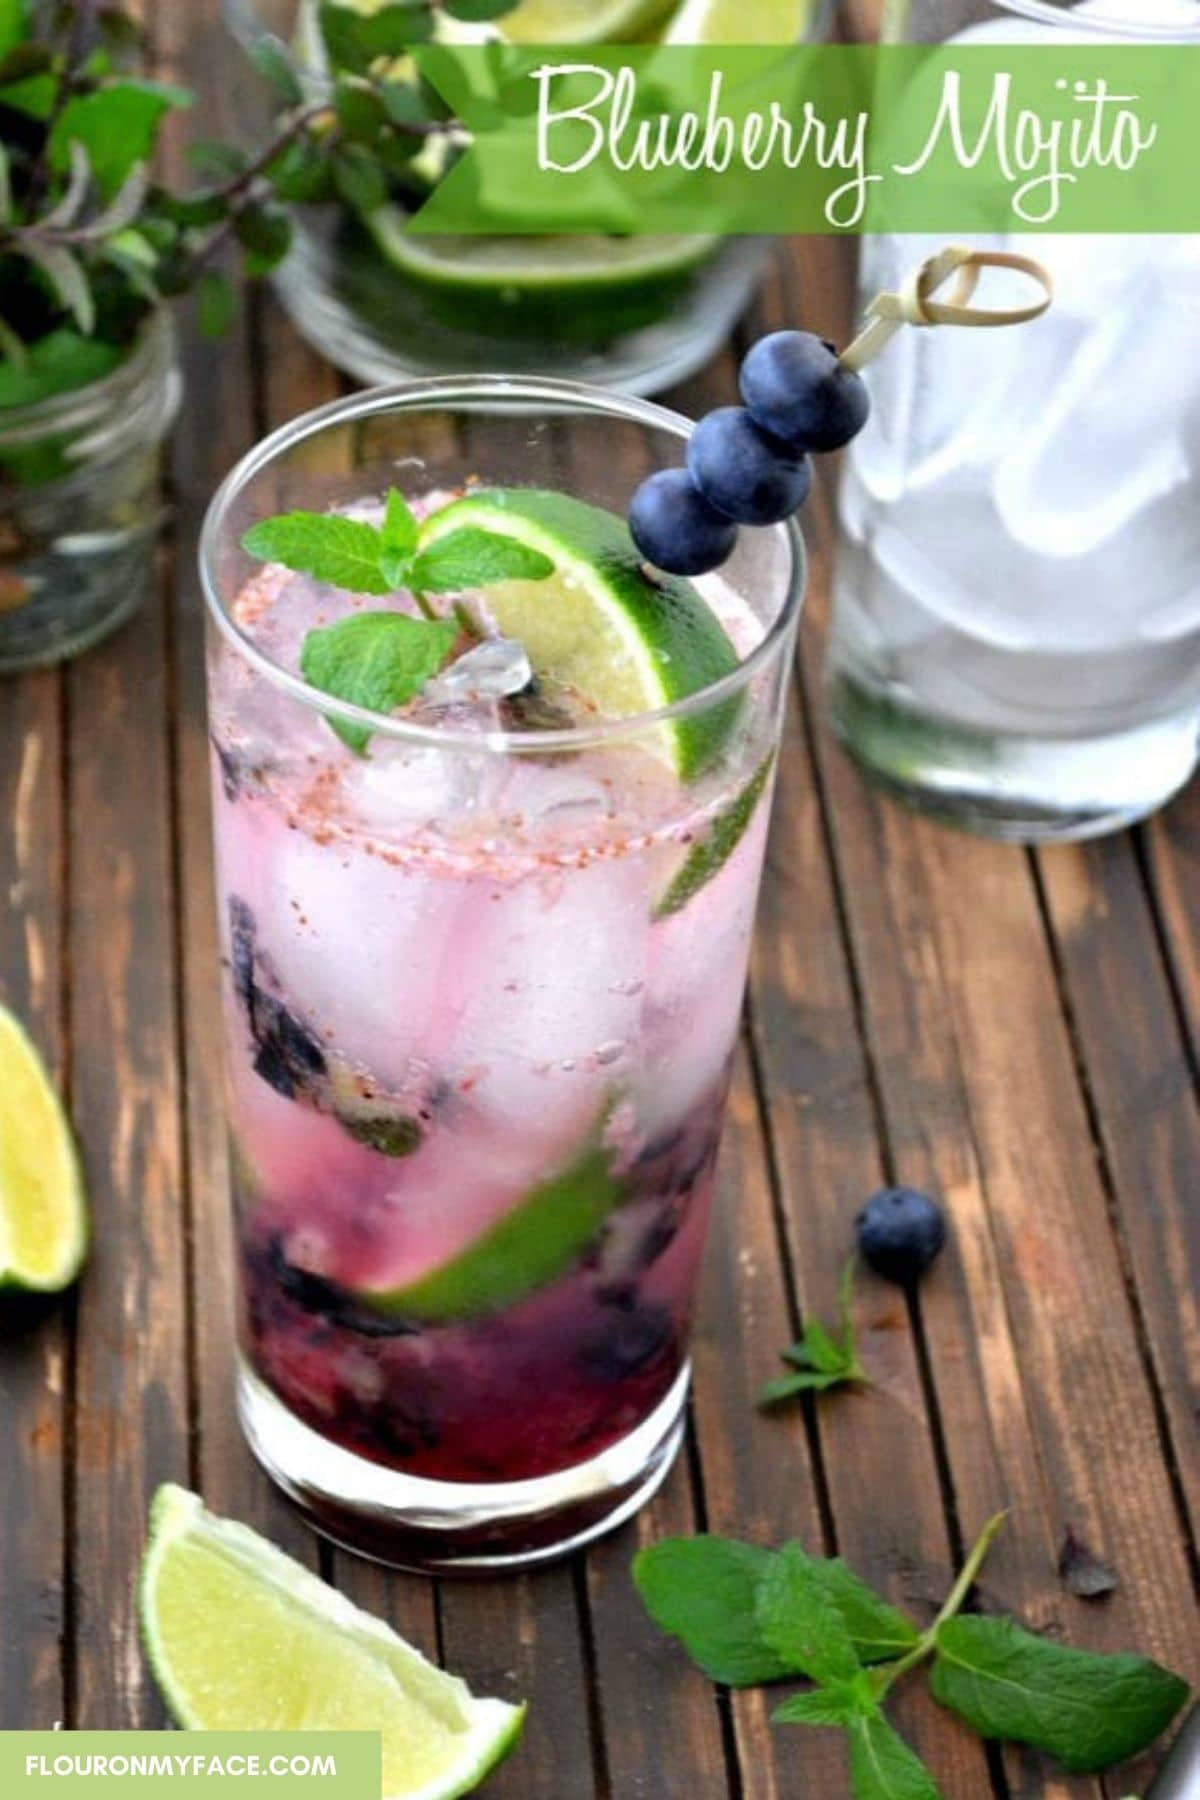 A tall glass filled with blueberry Mojito, lime wedges and a glass in the background.